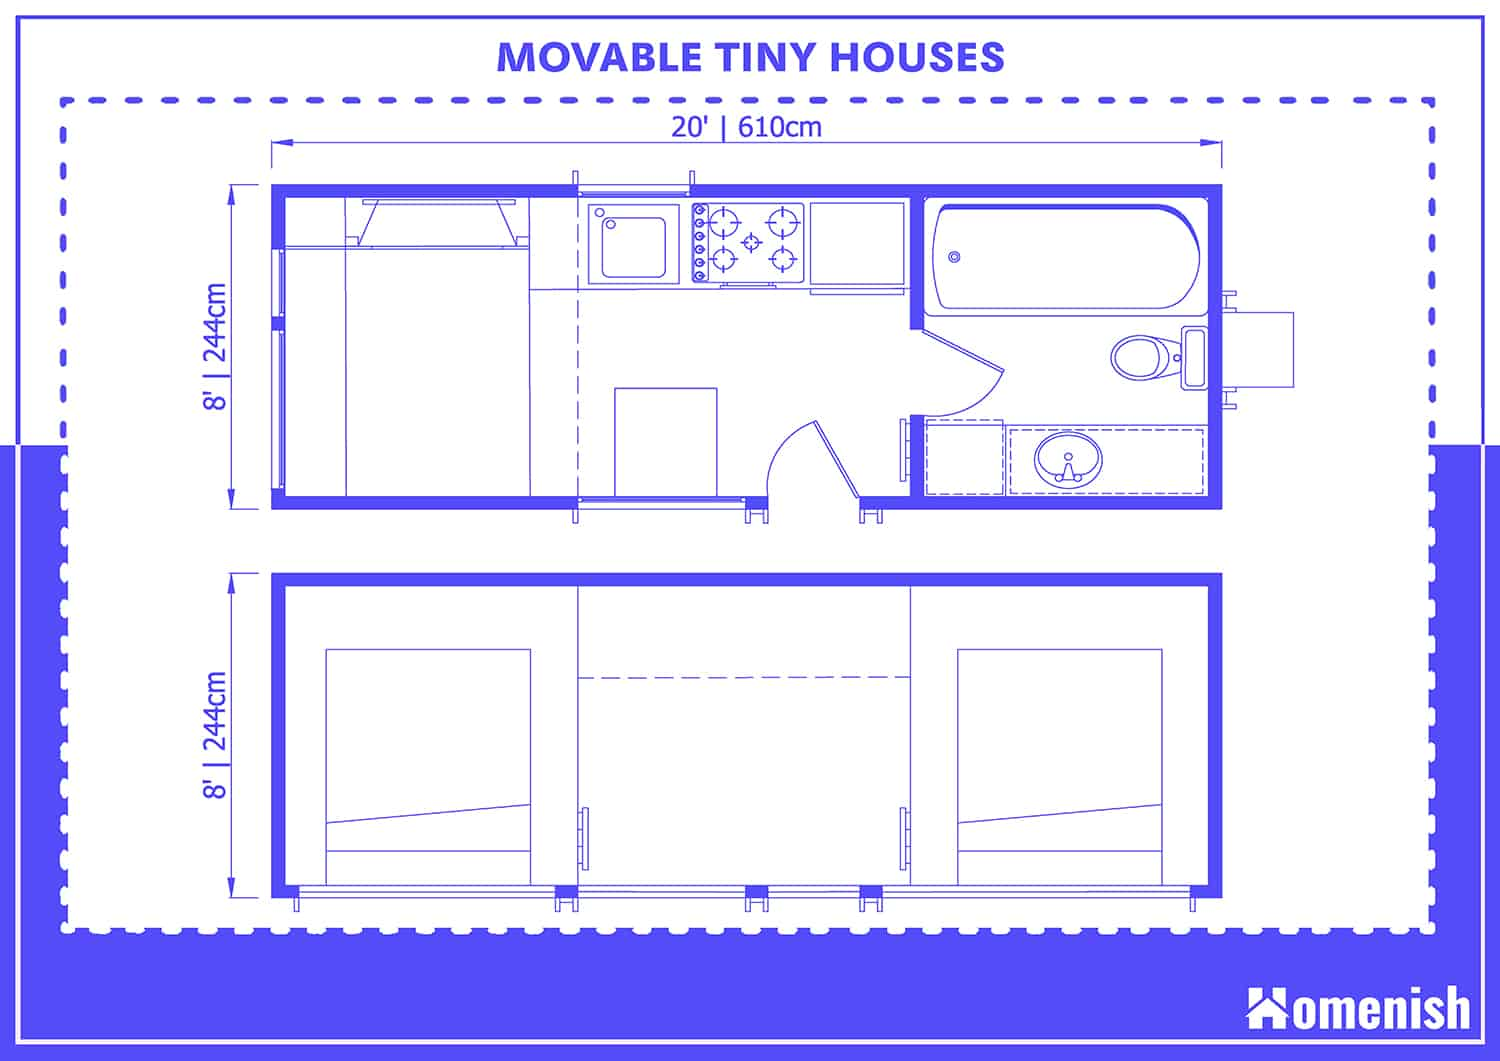 Movable Tiny House Dimensions